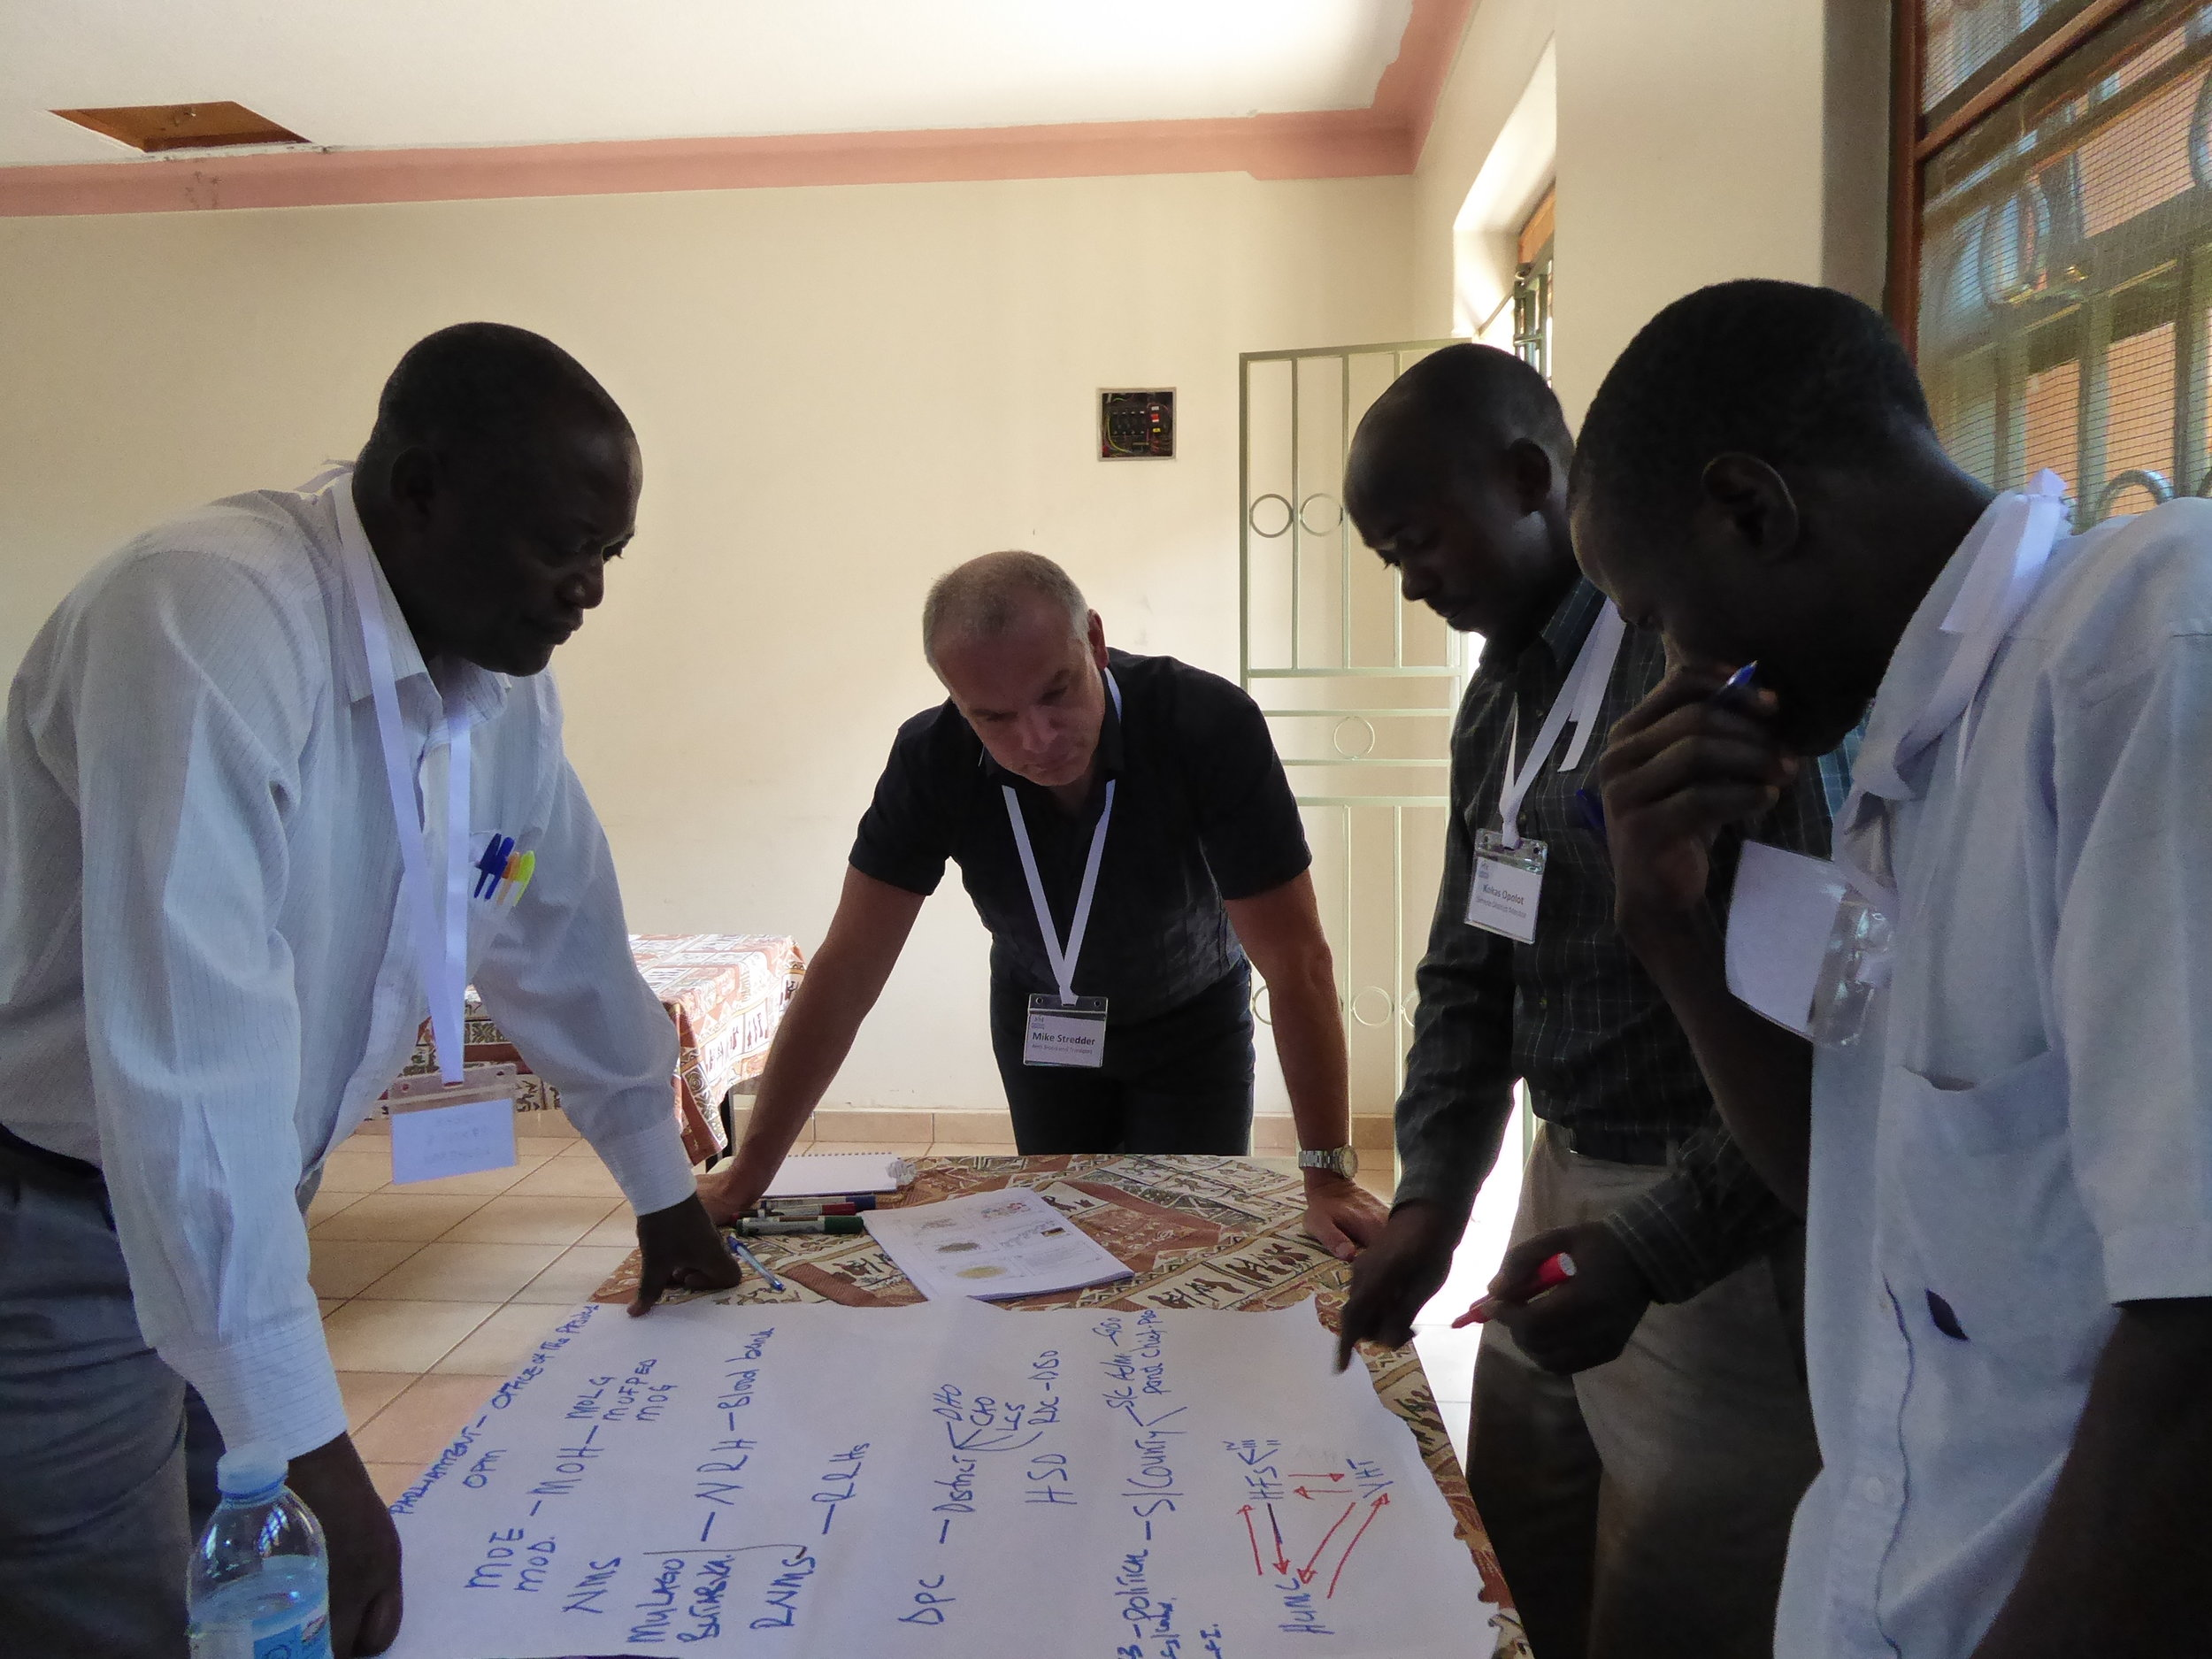 Mike Stredder, Director, NHS Blood and Transplant, works with Ugandan colleagues.